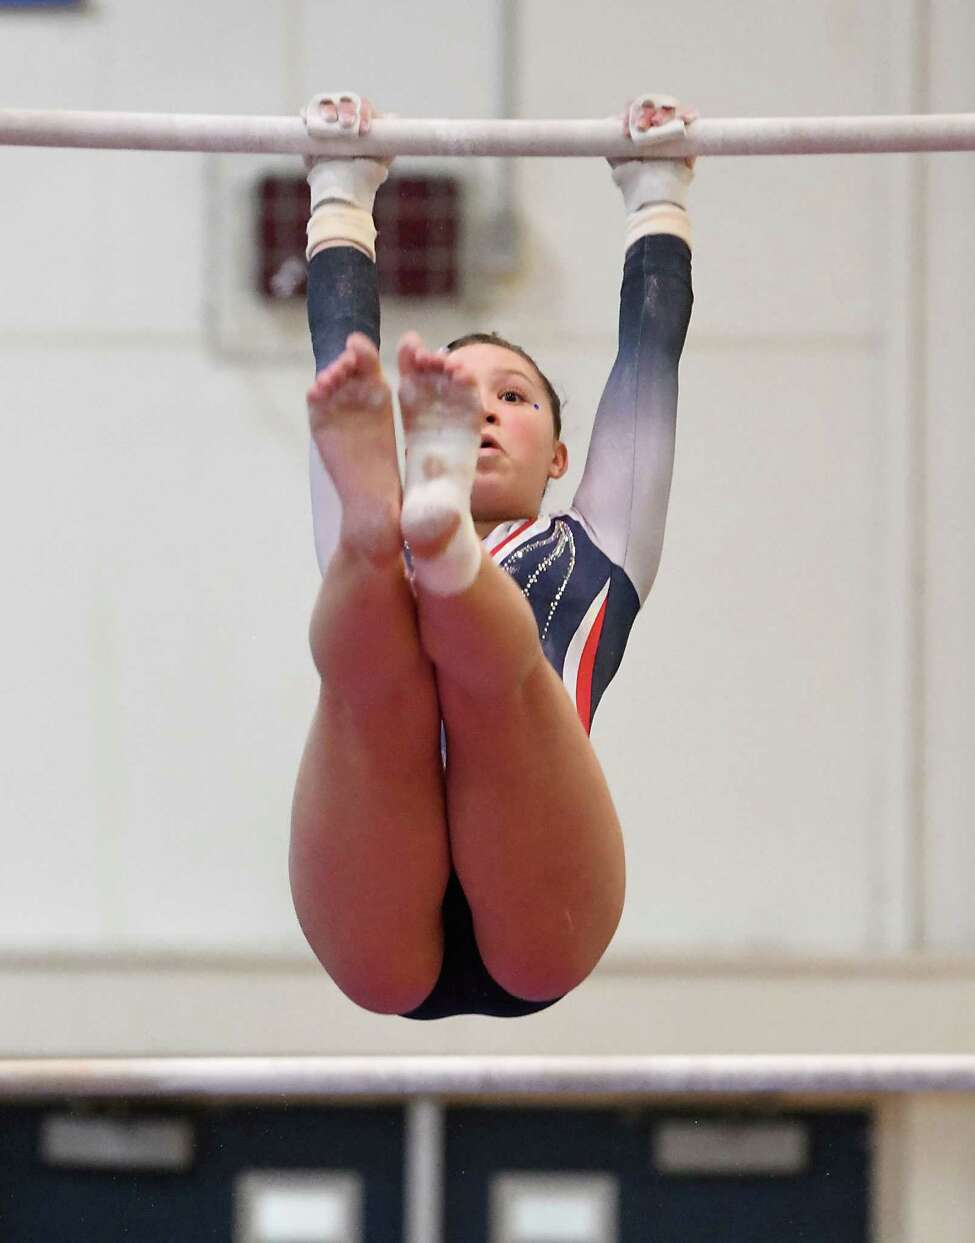 Saratoga's Carly Ruschack competes on the uneven bars during the Section II Gymnastics sectionals at Shaker High School on Wednesday, Feb. 12, 2020 in Latham, N.Y. (Lori Van Buren/Times Union)